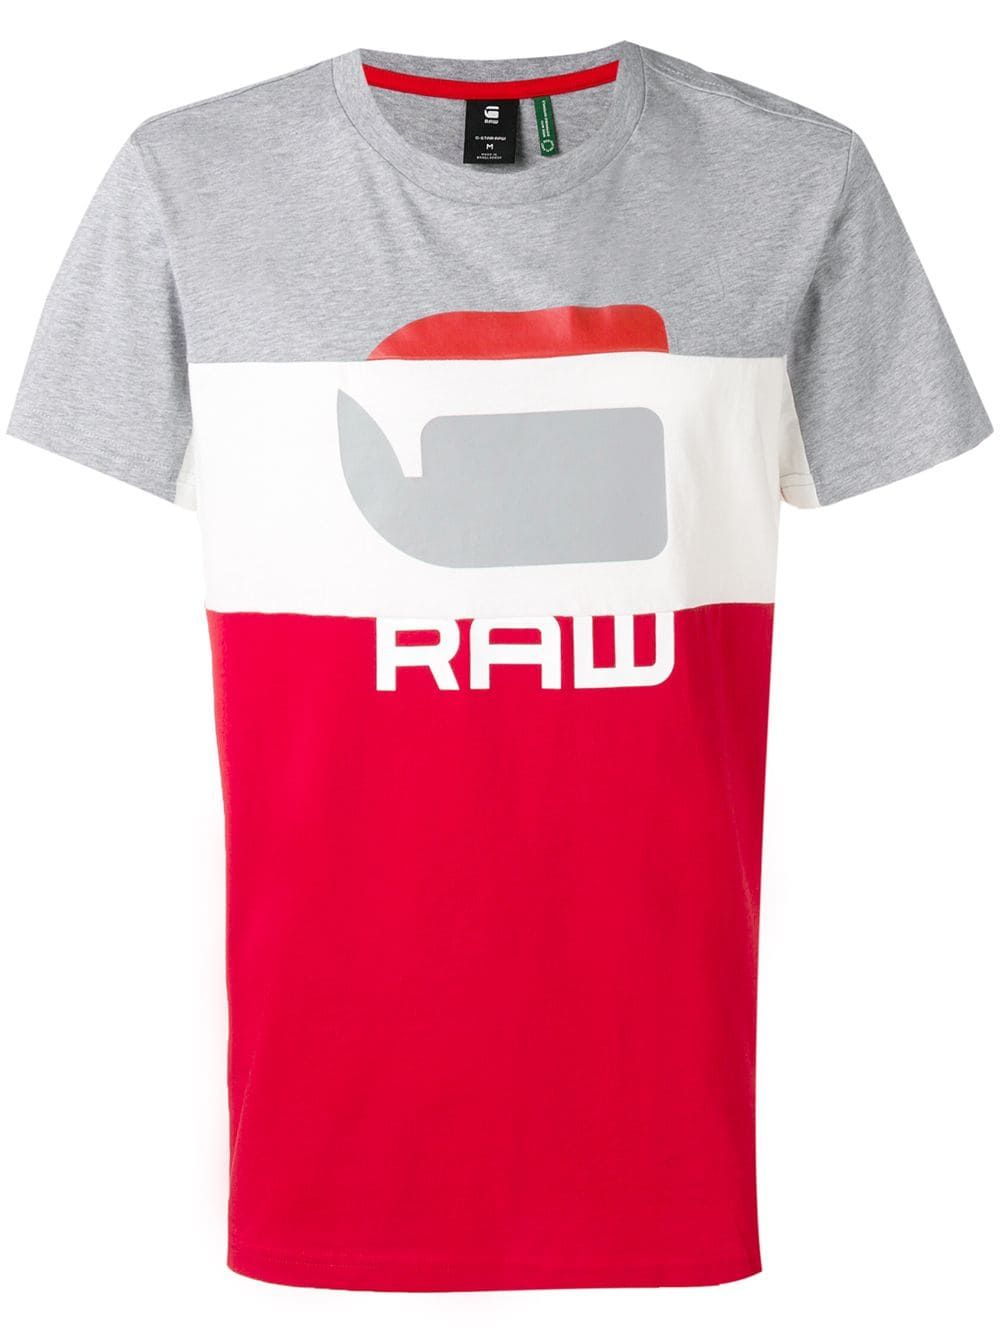 Regular Fit Flame Red G-Star Raw 09 R s//s Crew Neck T-Shirt